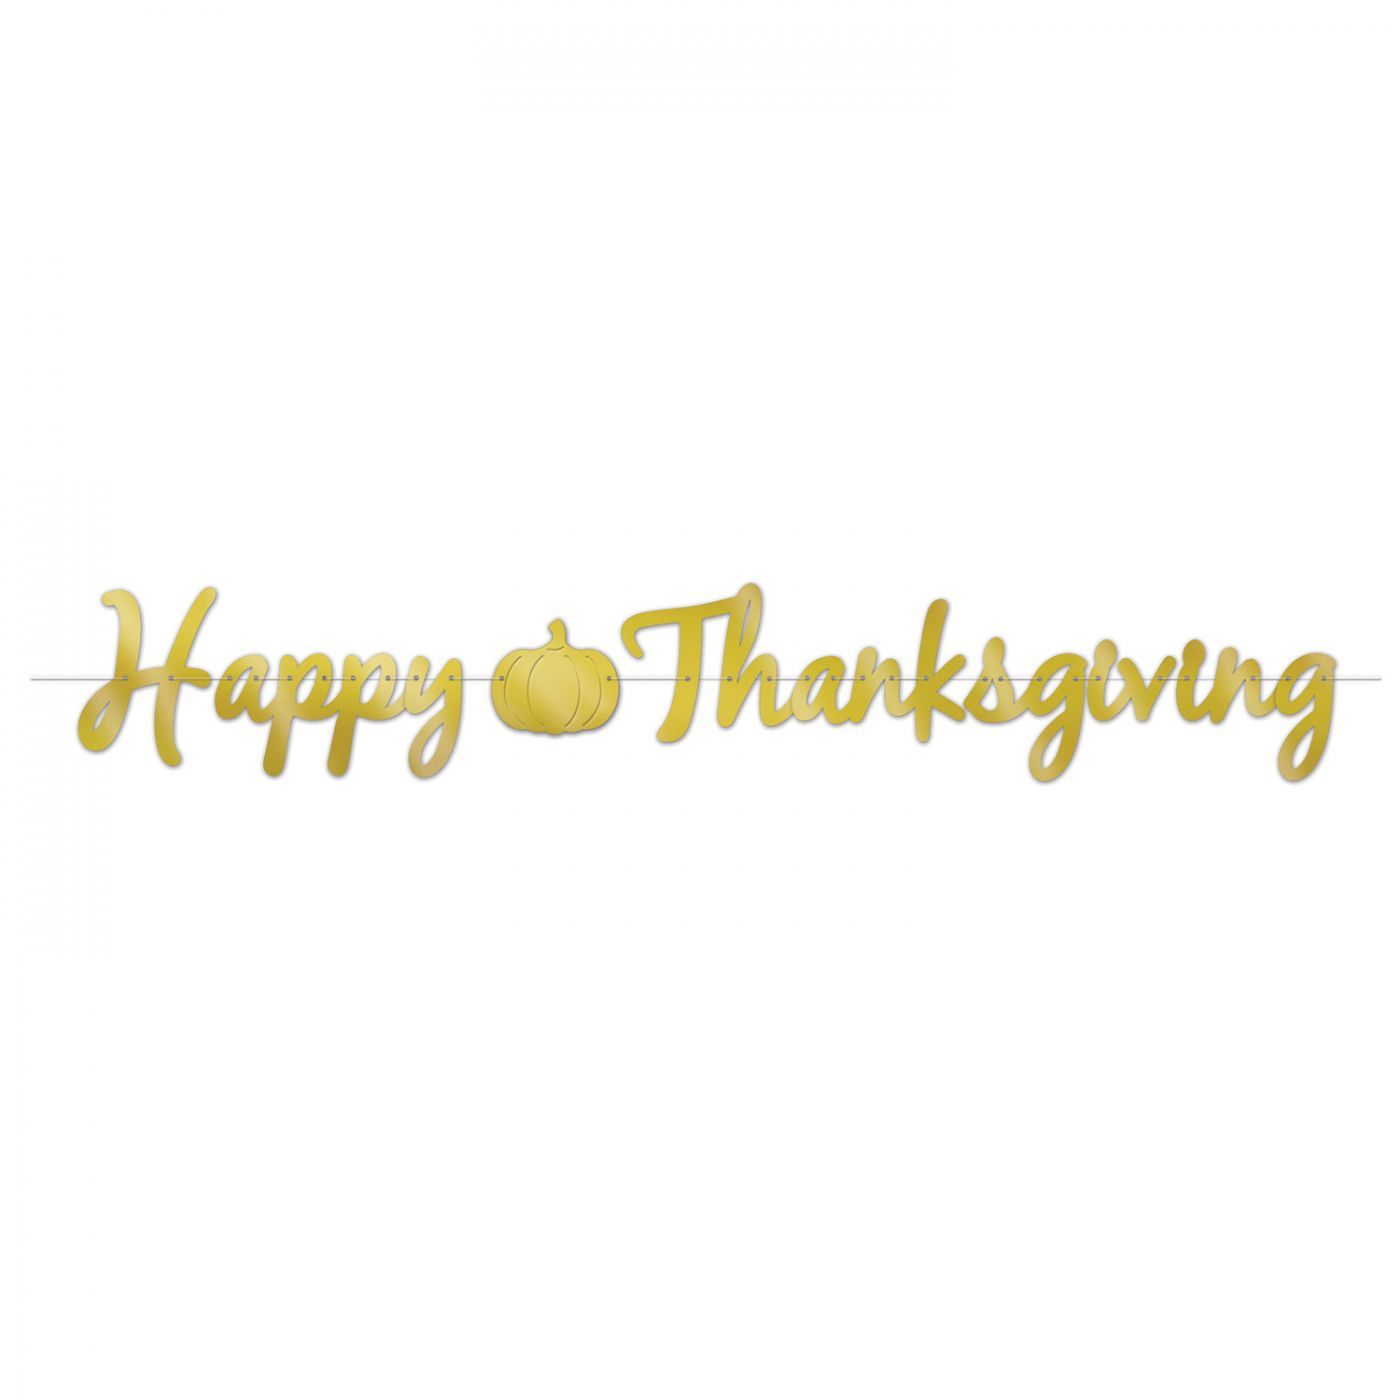 Foil Happy Thanksgiving Streamer image